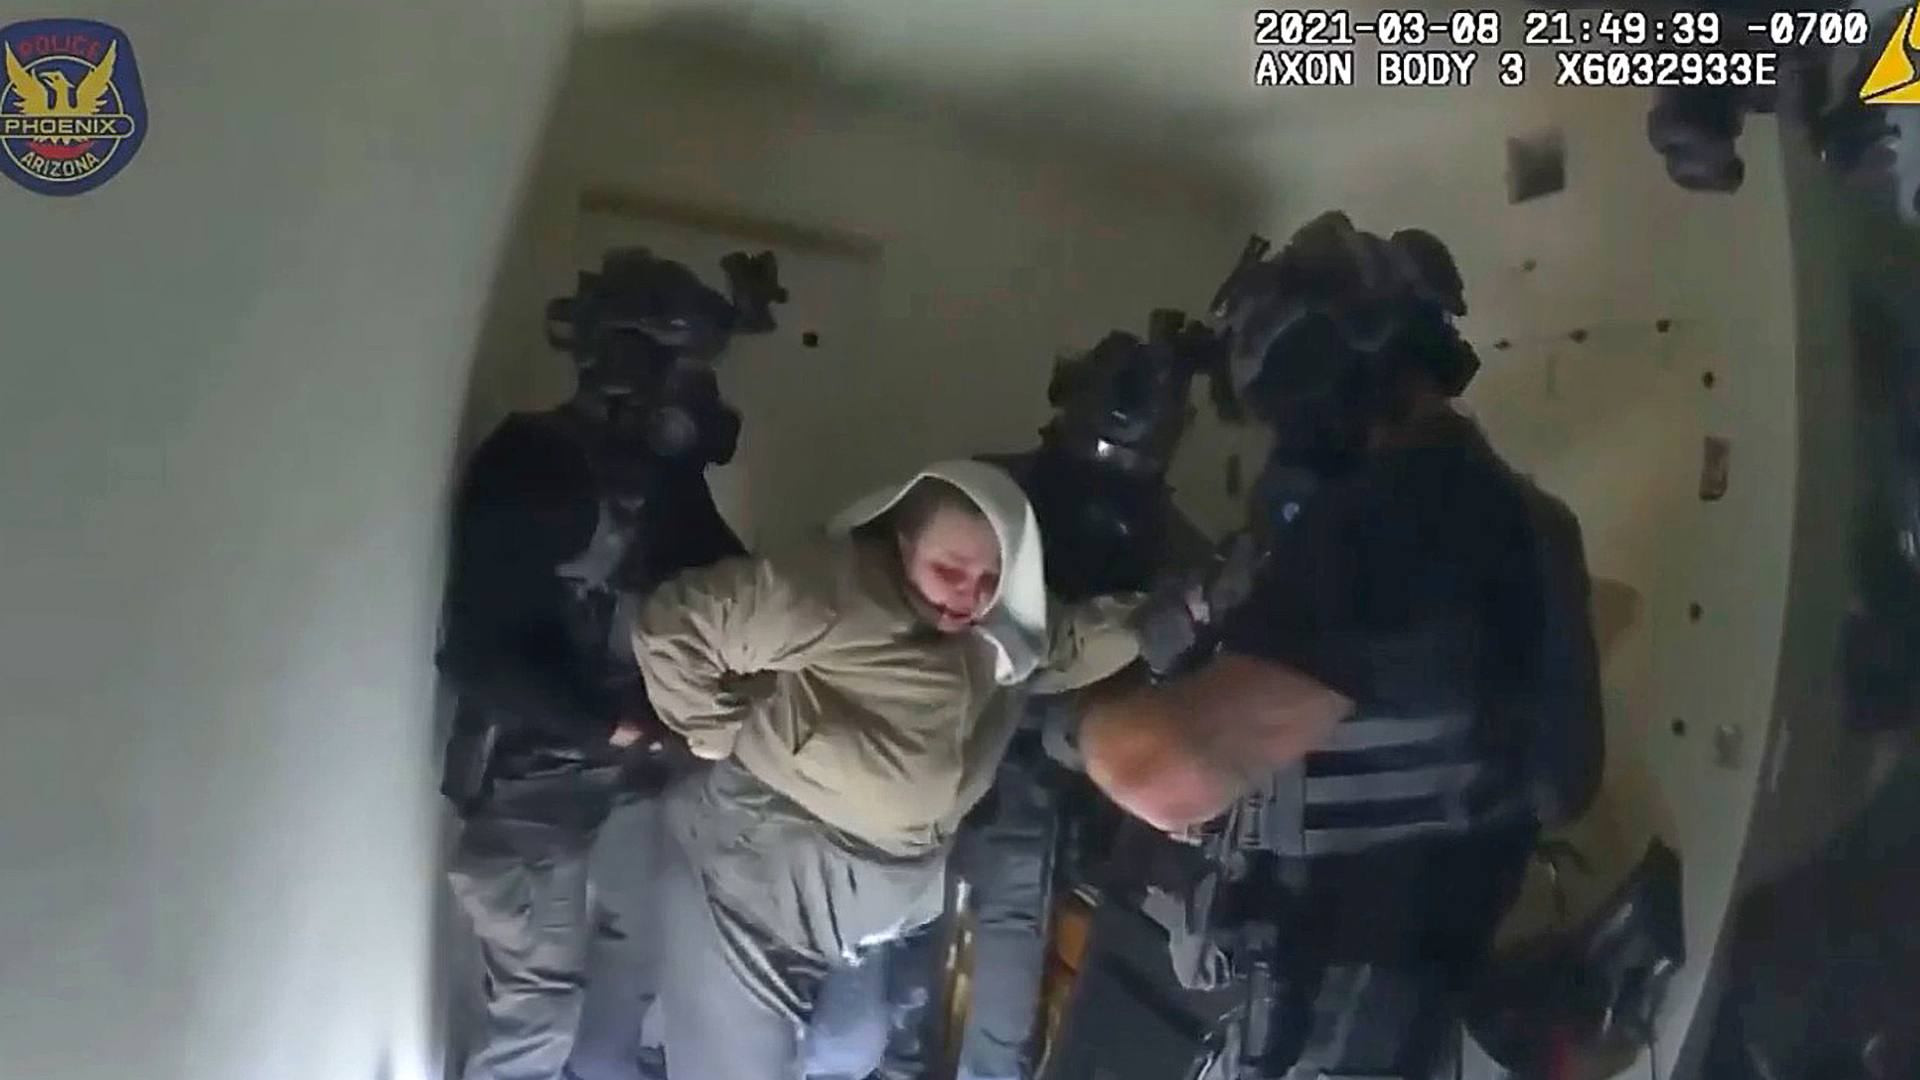 VIDEO: Armed Woman Who Allegedly Shot At Officers Arrested After Eight-Hour Long Negotiations